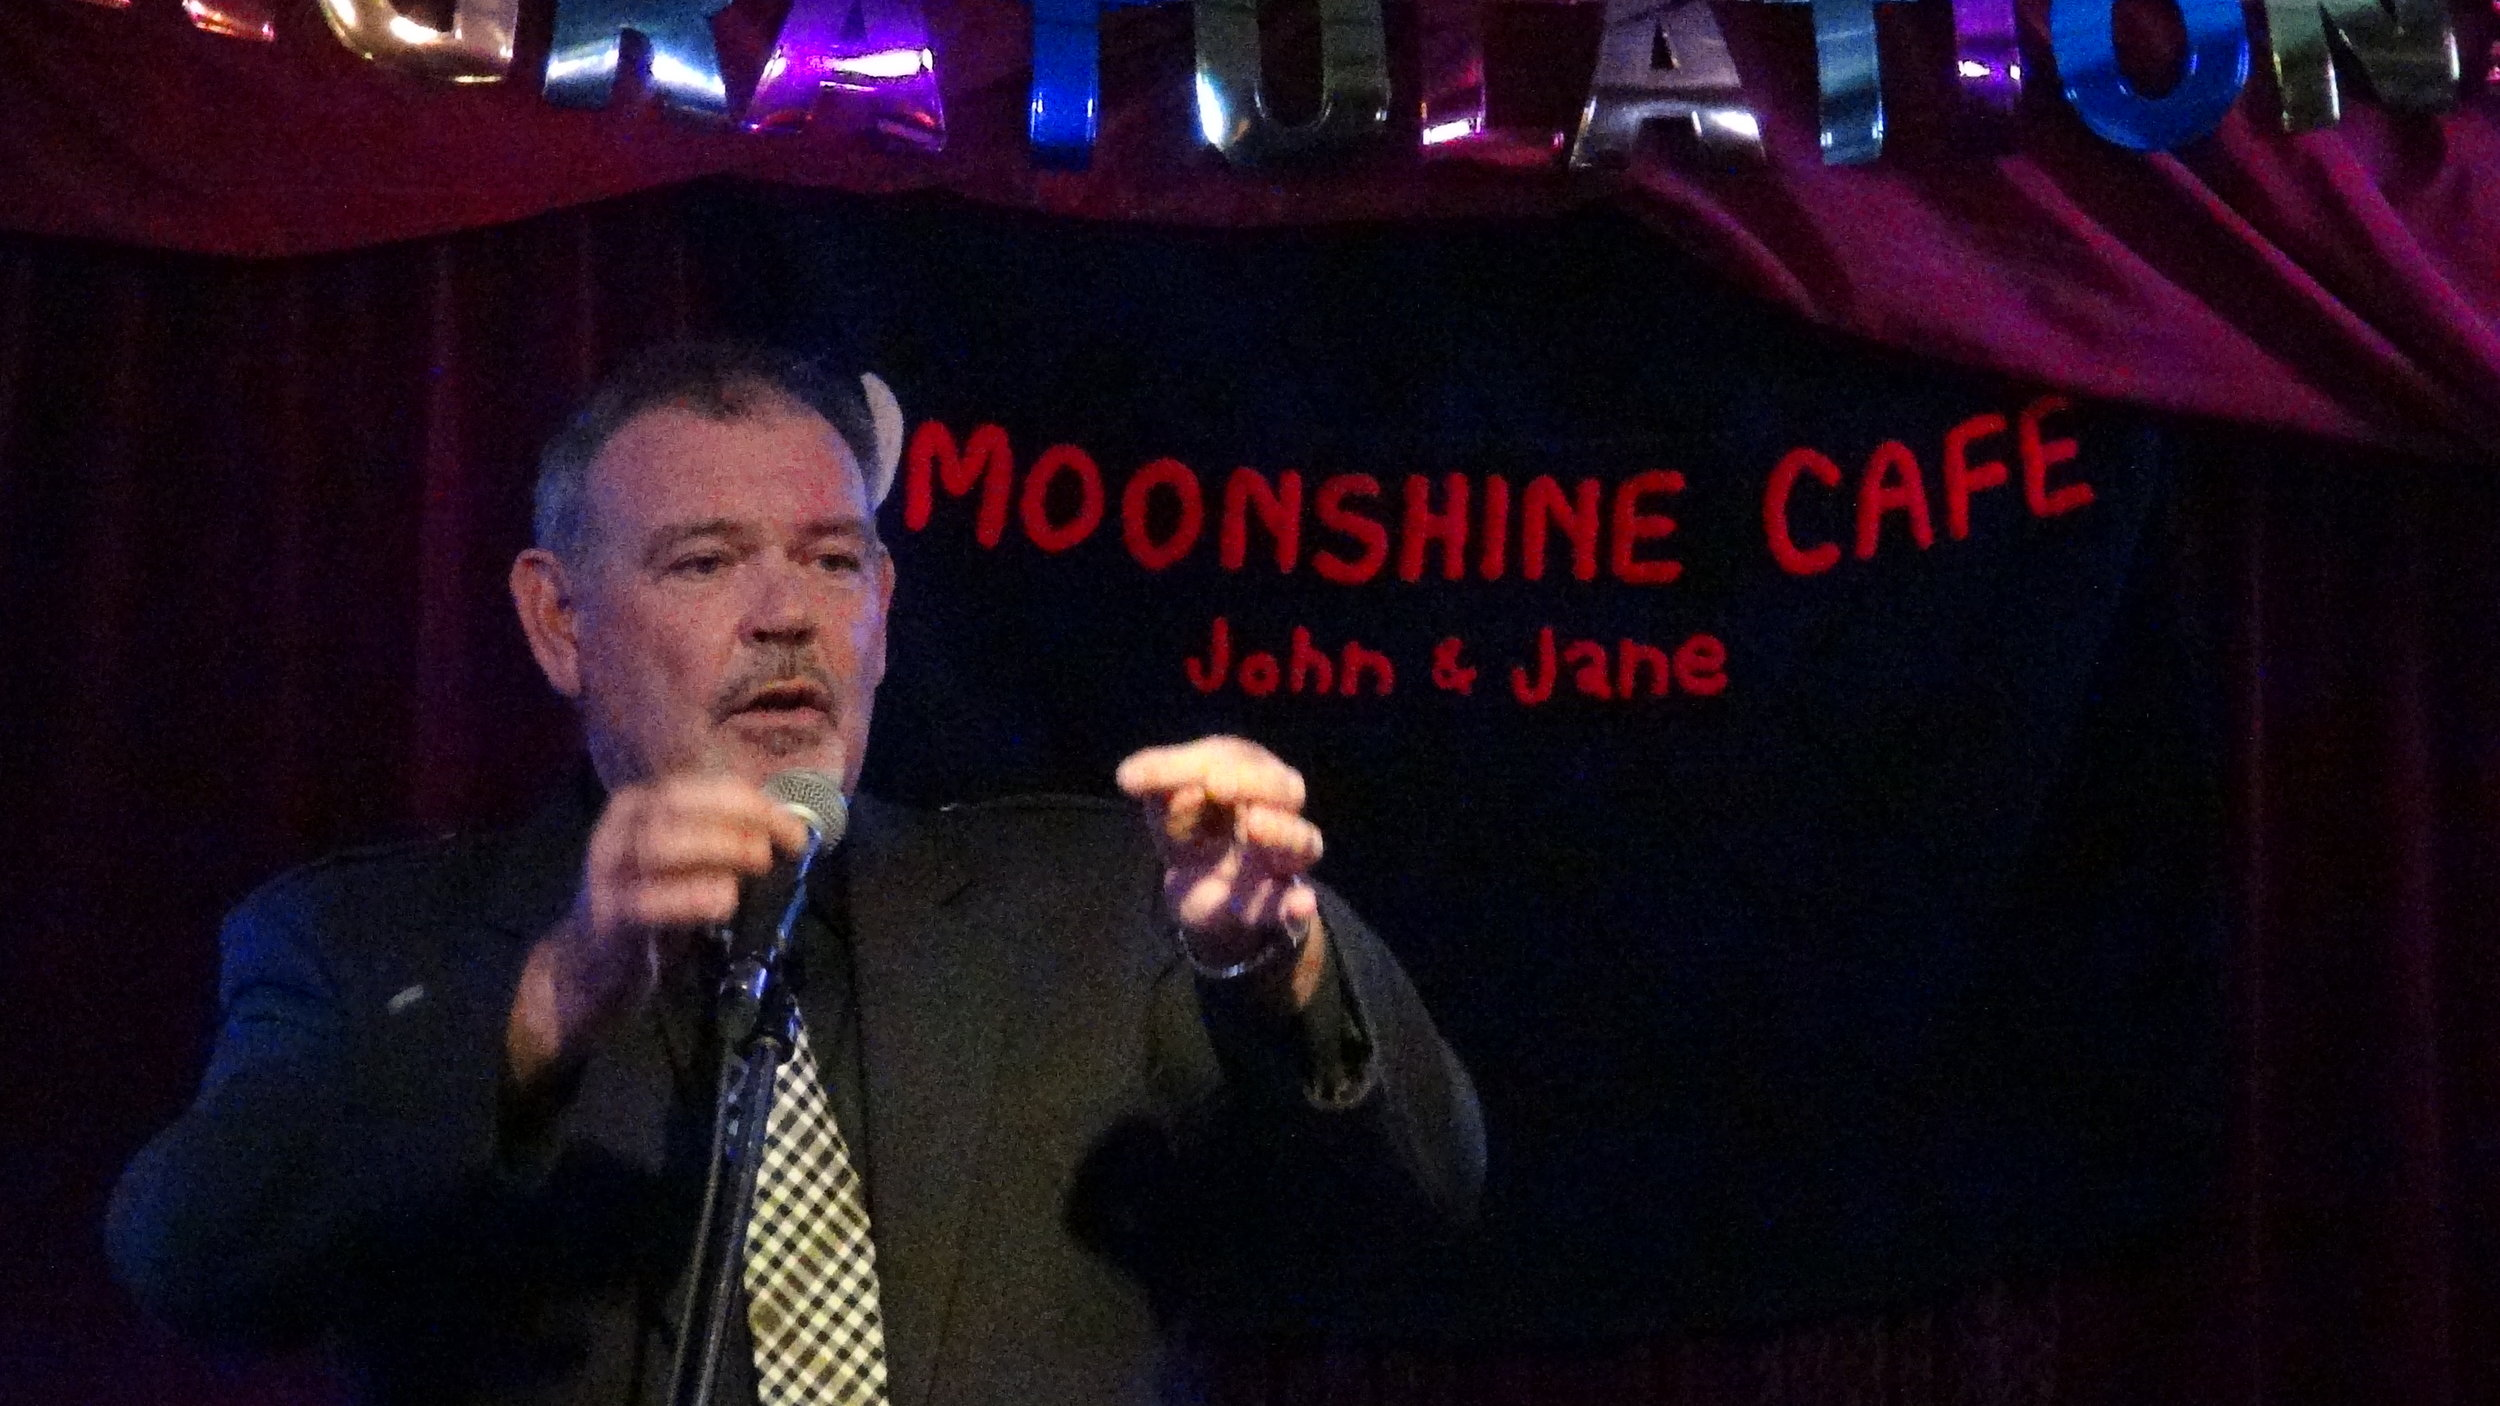 Featurette Artist  Ronnie O'Byrne , who has performed throughout the UK, Australia, and Canada, delivers a side-splitting performance with his signature satirical Scottish wit.